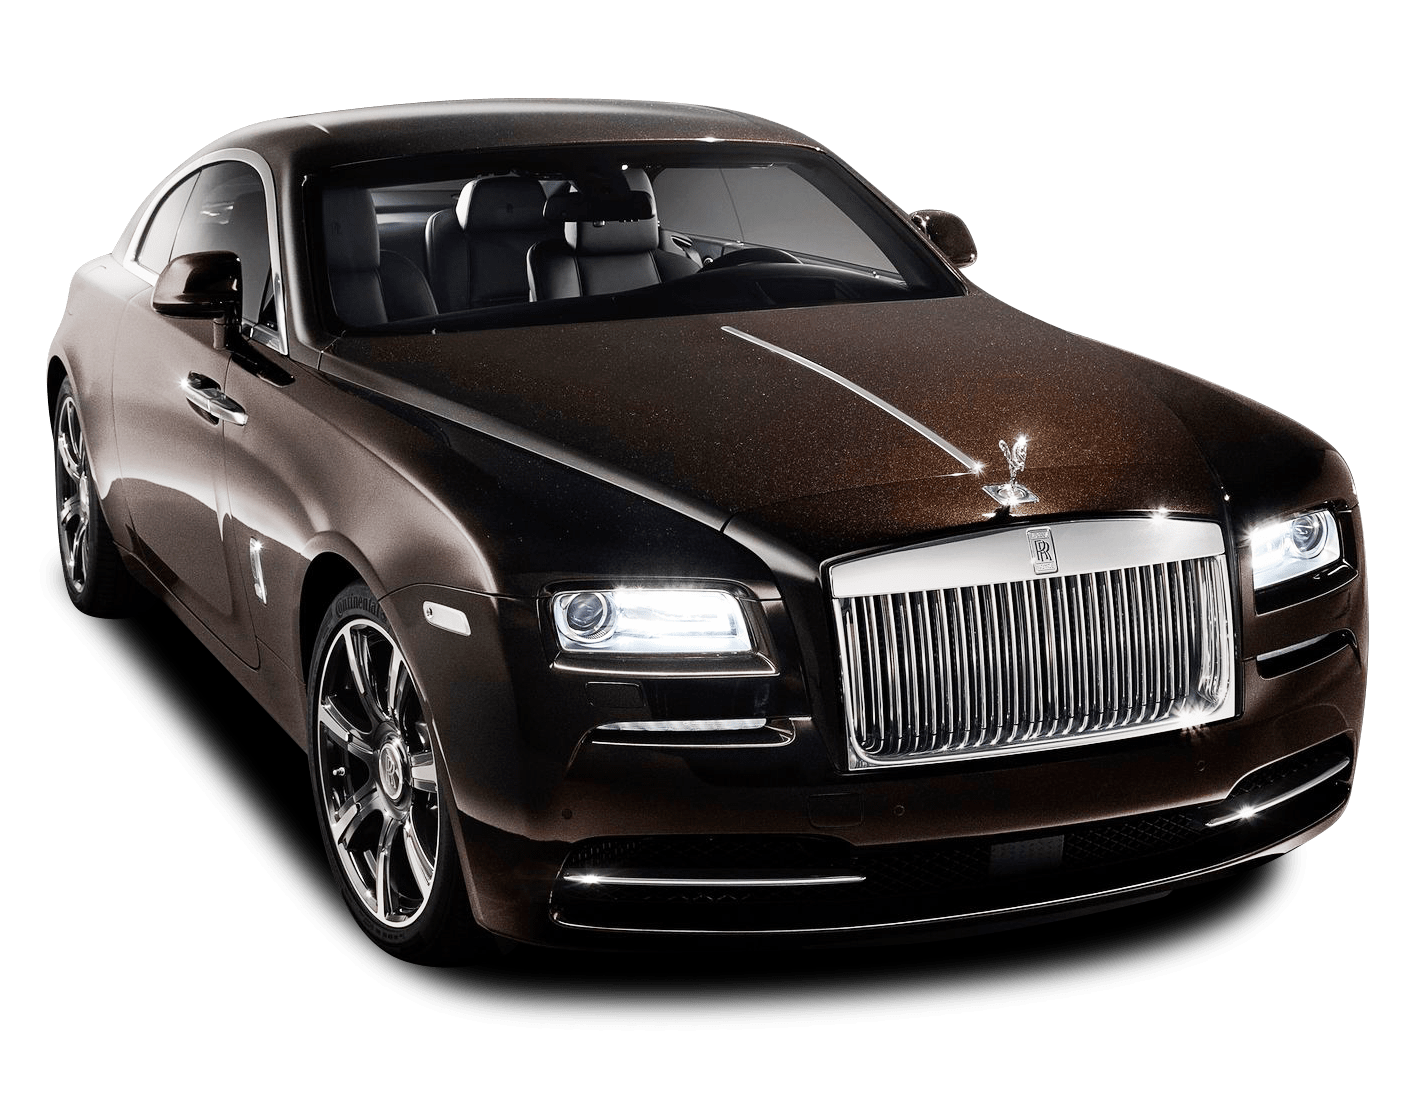 Rolls Royce Wraith Review Price For Sale Specs Models Carsguide